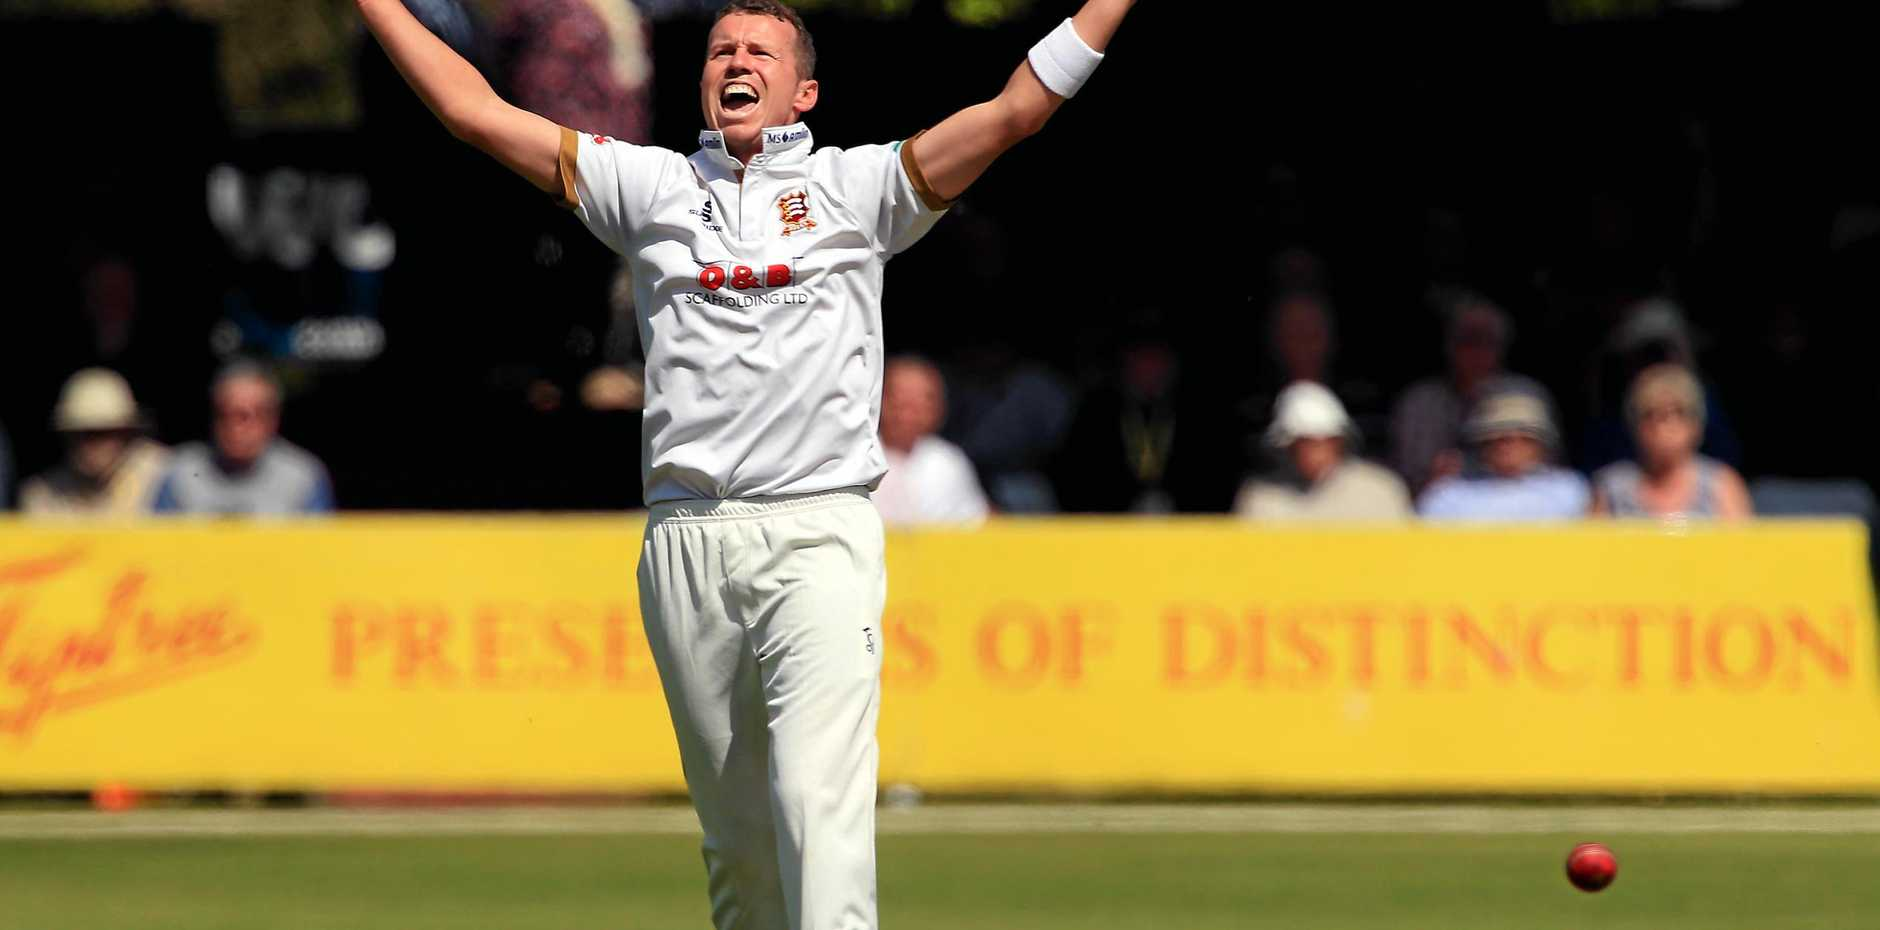 Peter Siddle celebrates a wicket on day one of County Championship match between Essex and Yorkshire in Chelmsford, England. Picture: Stephen Pond/Getty Images